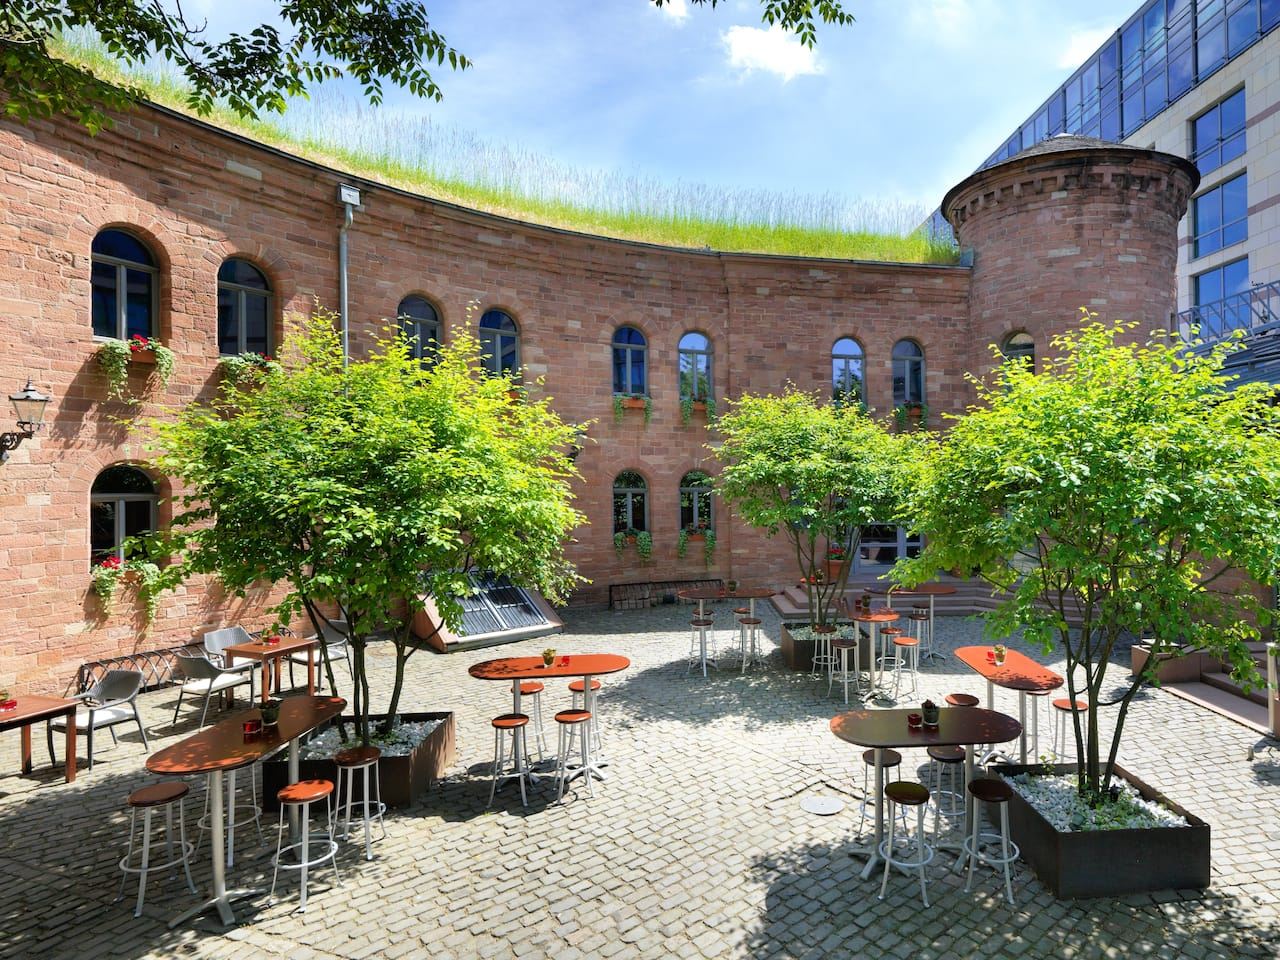 Fort Malakoff at Hyatt Regency Mainz